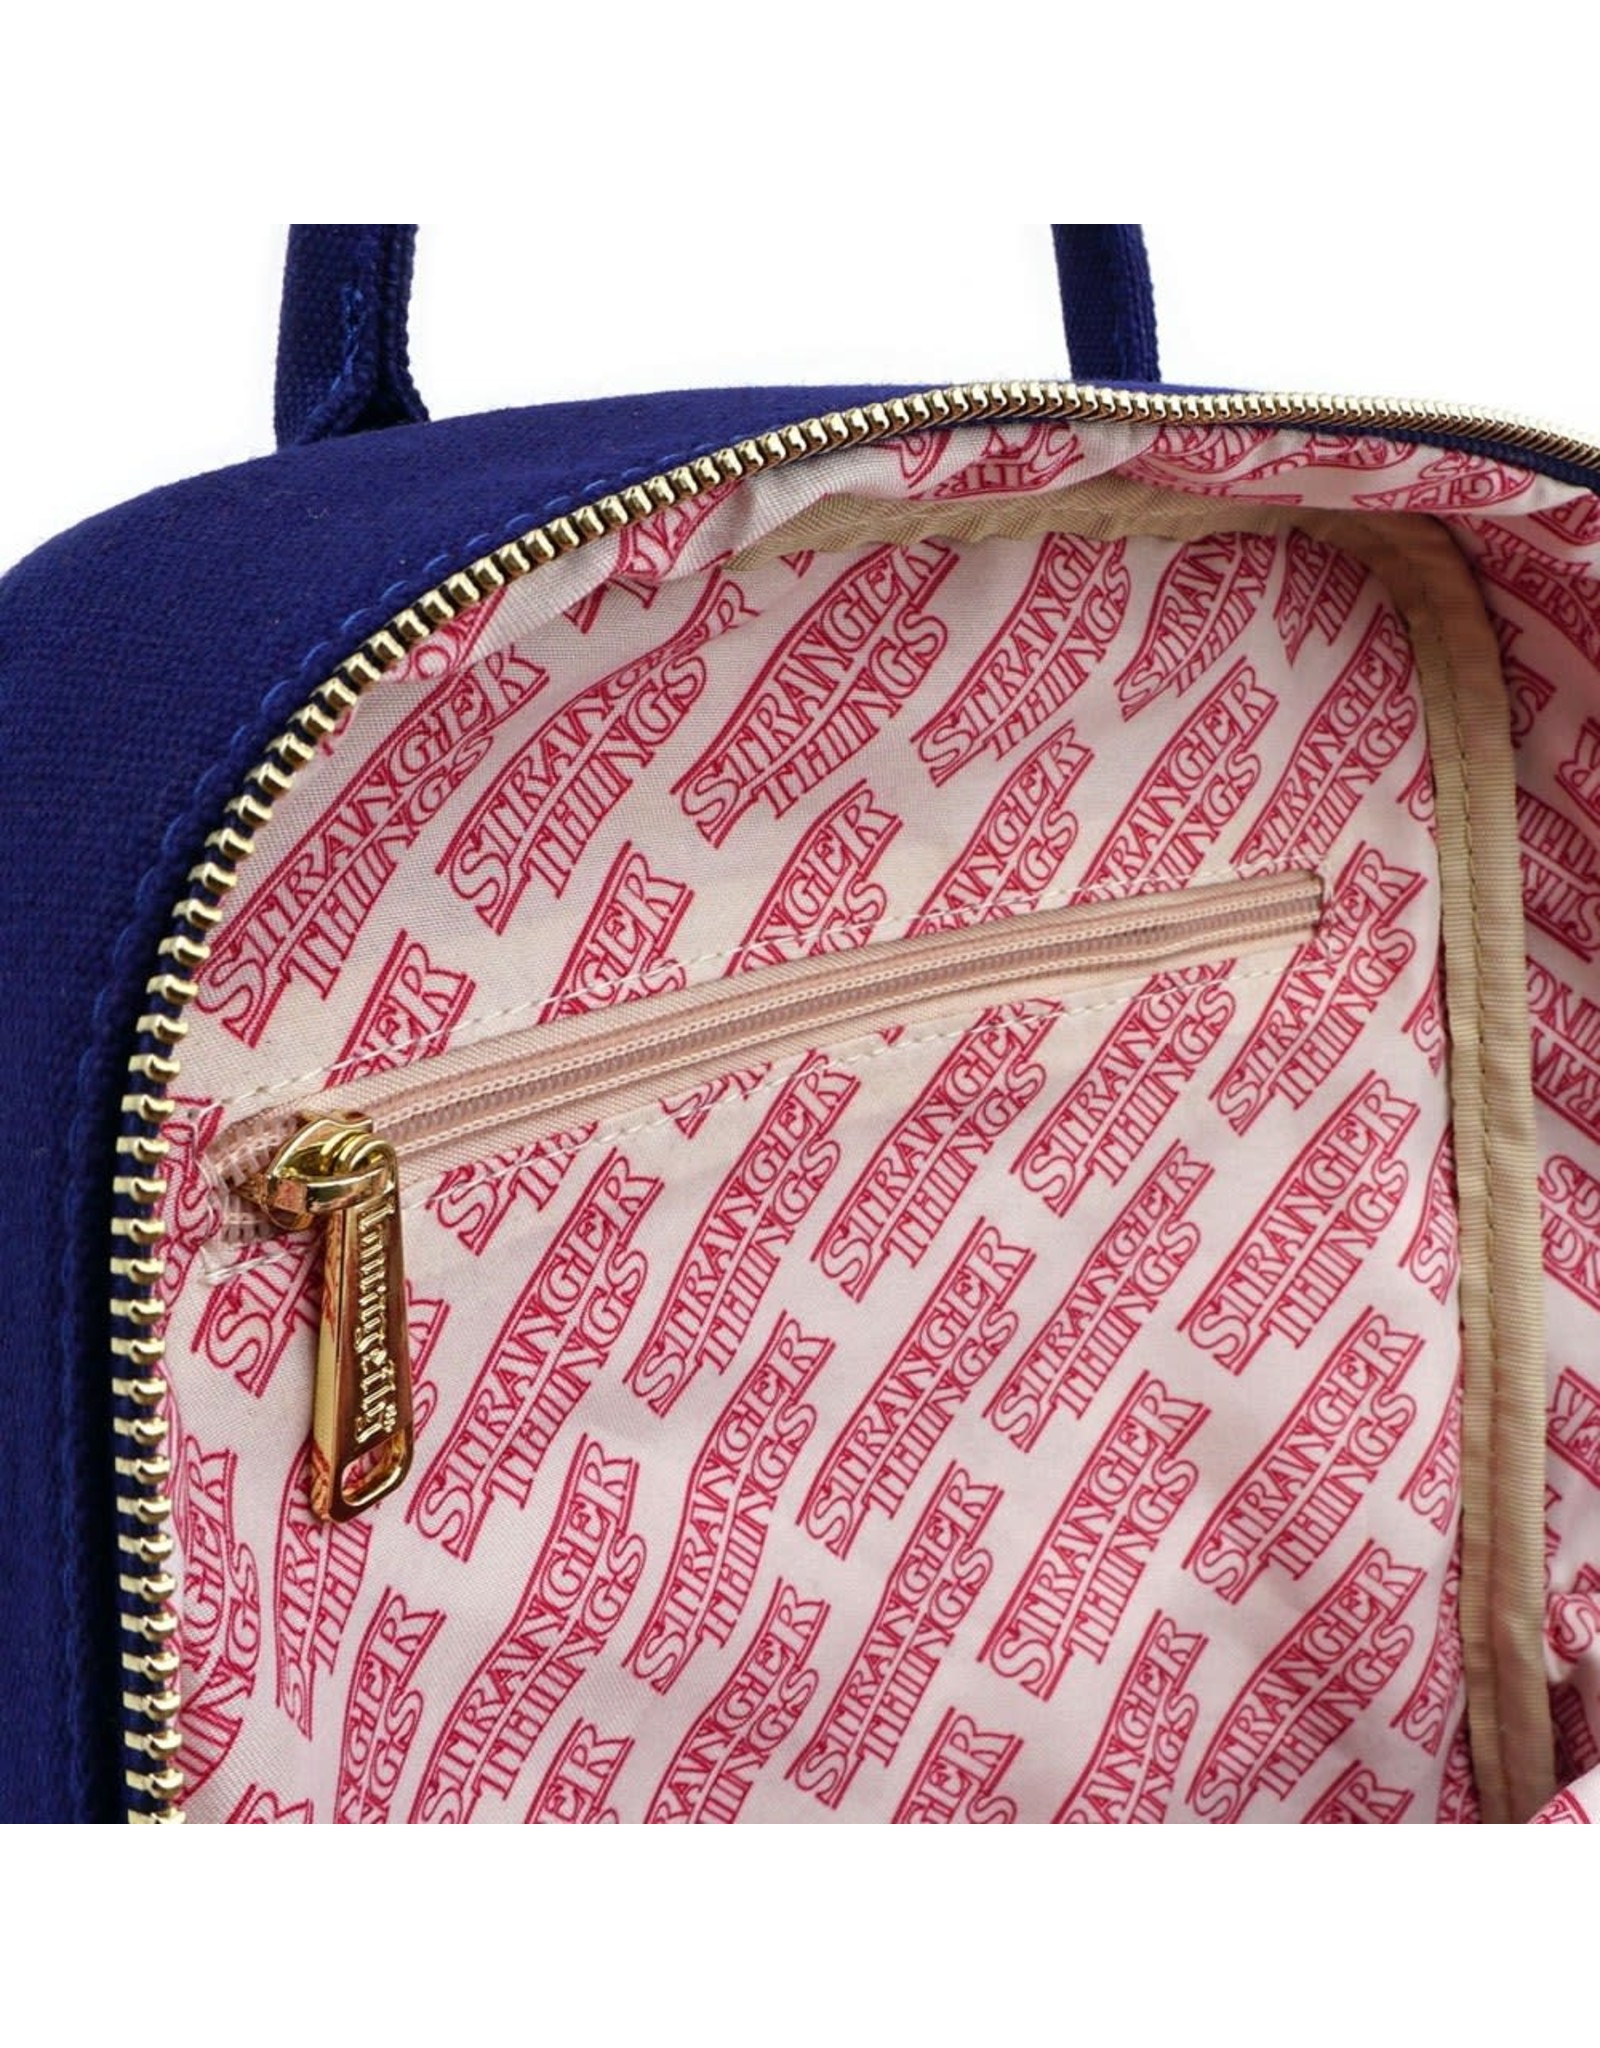 Loungefly STRANGER THINGS Backpack - Scoops Ahoy